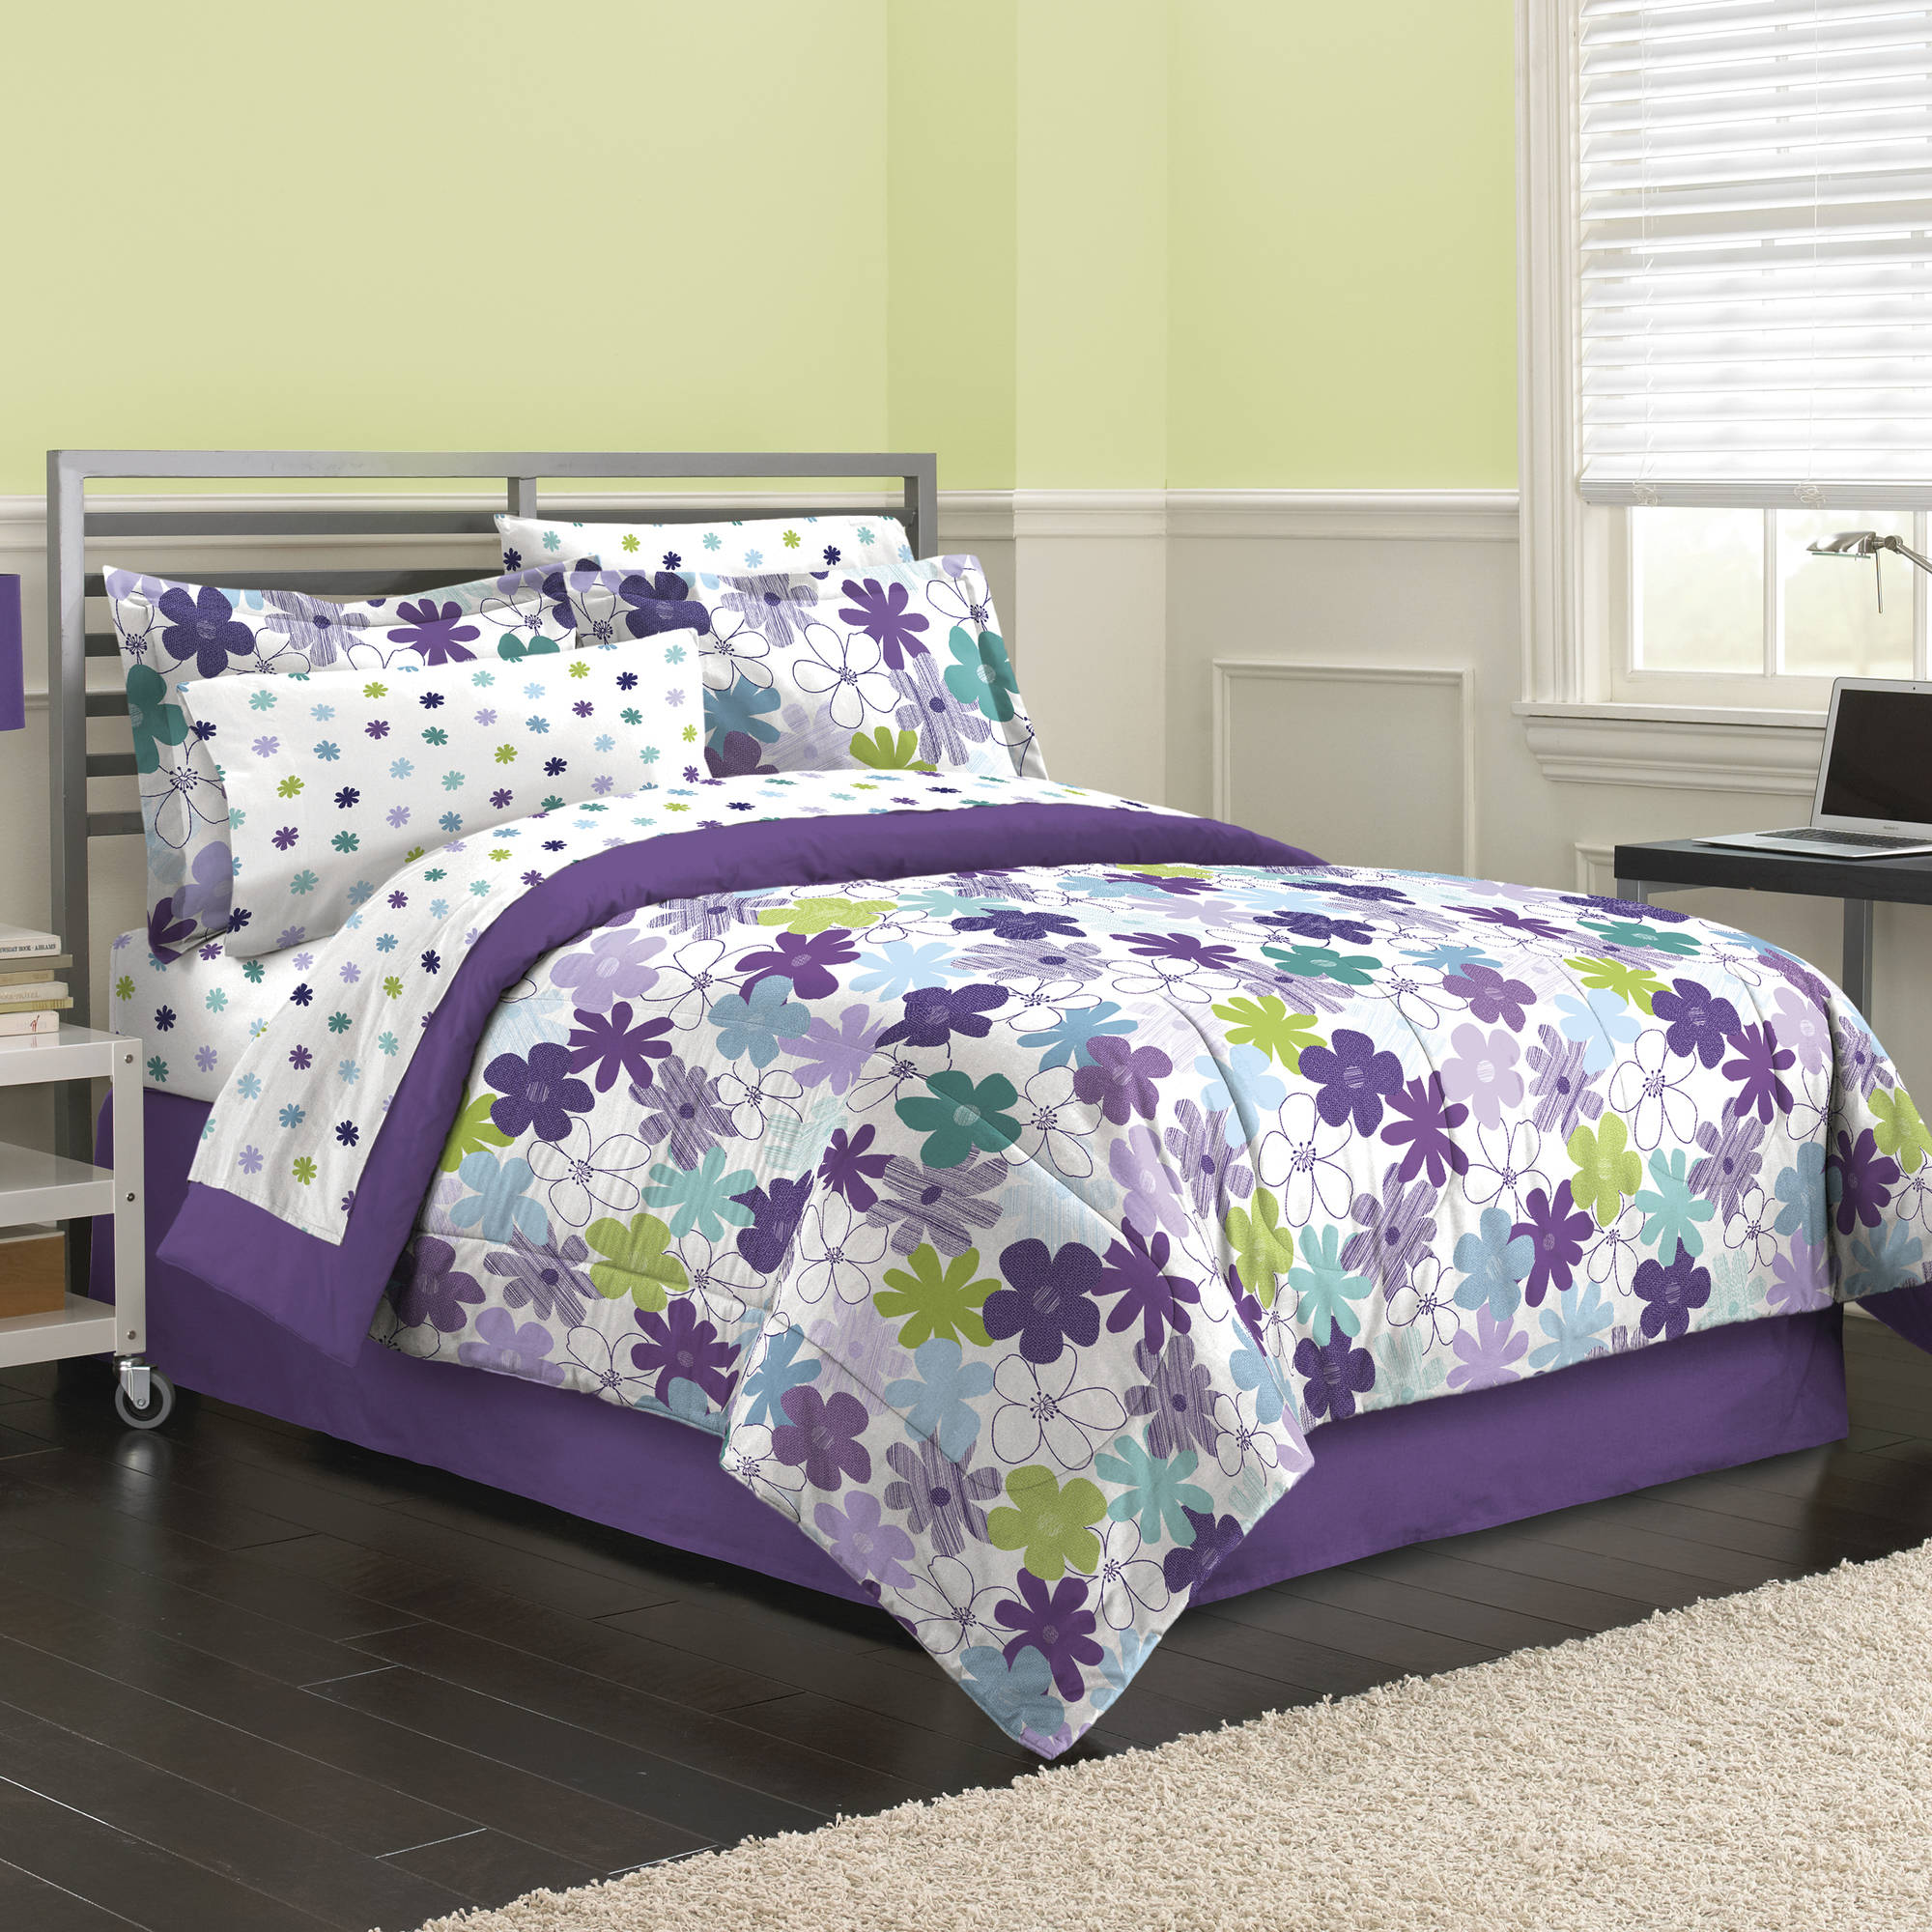 First At Home Graphic Daisy Bed in a Bag Bedding Set, Purple